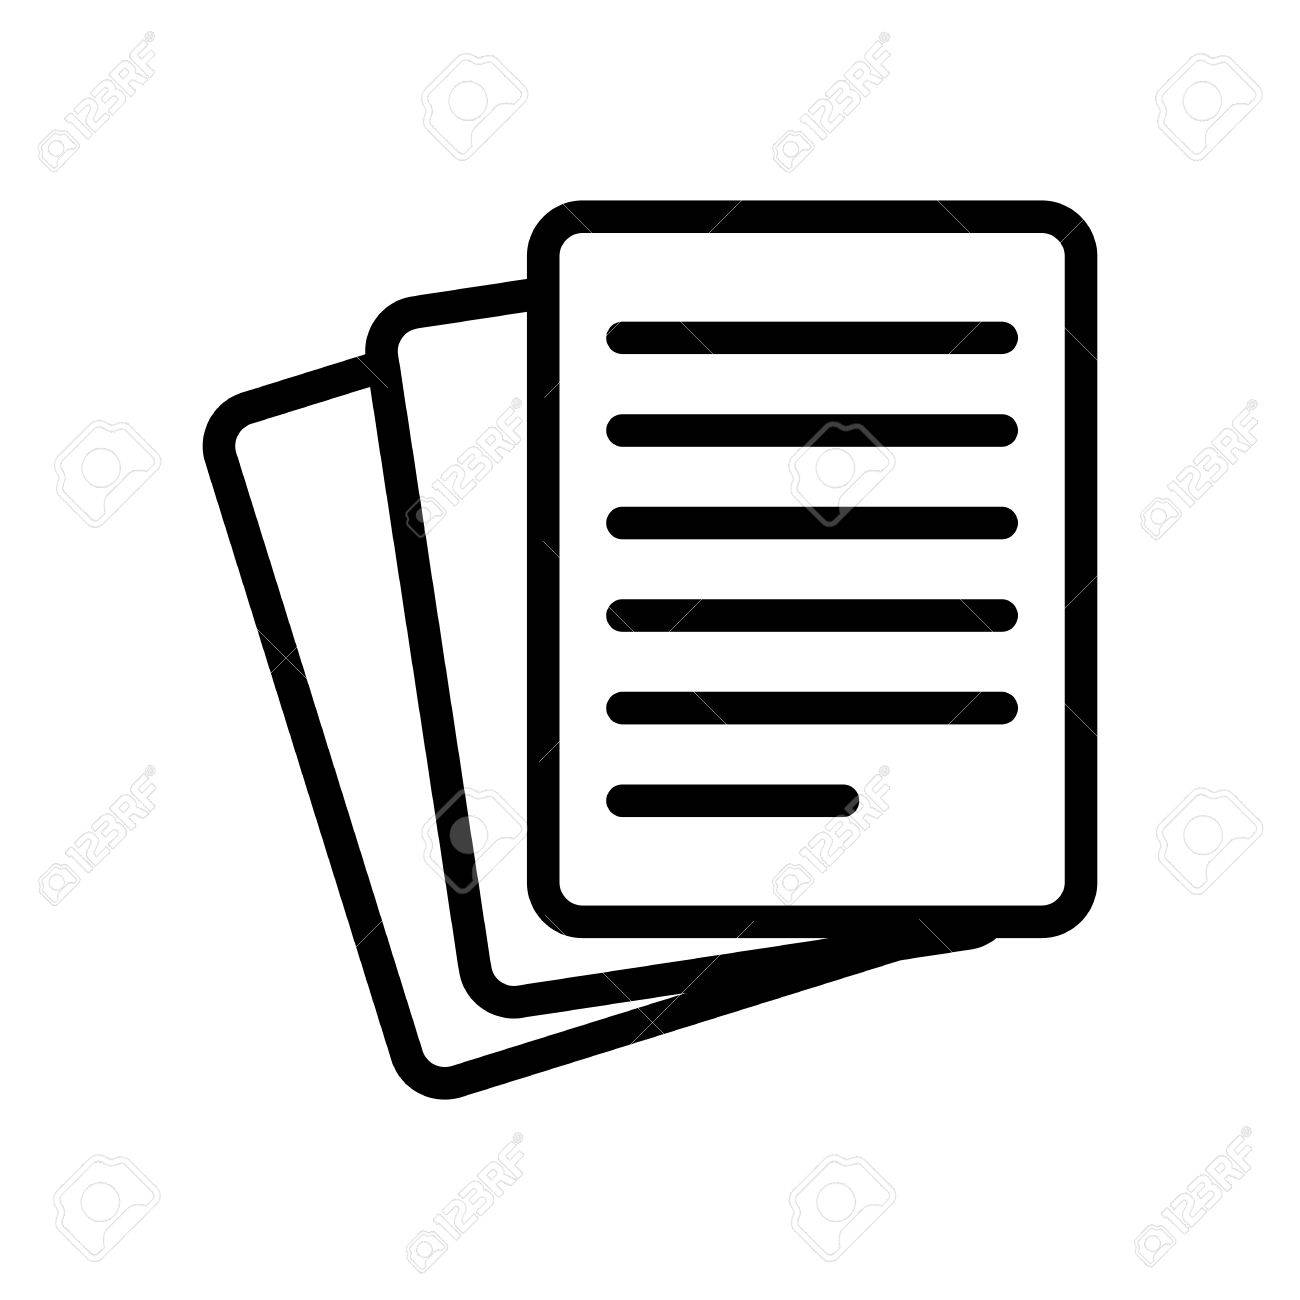 stack of paper icon royalty free cliparts, vectors, and stock